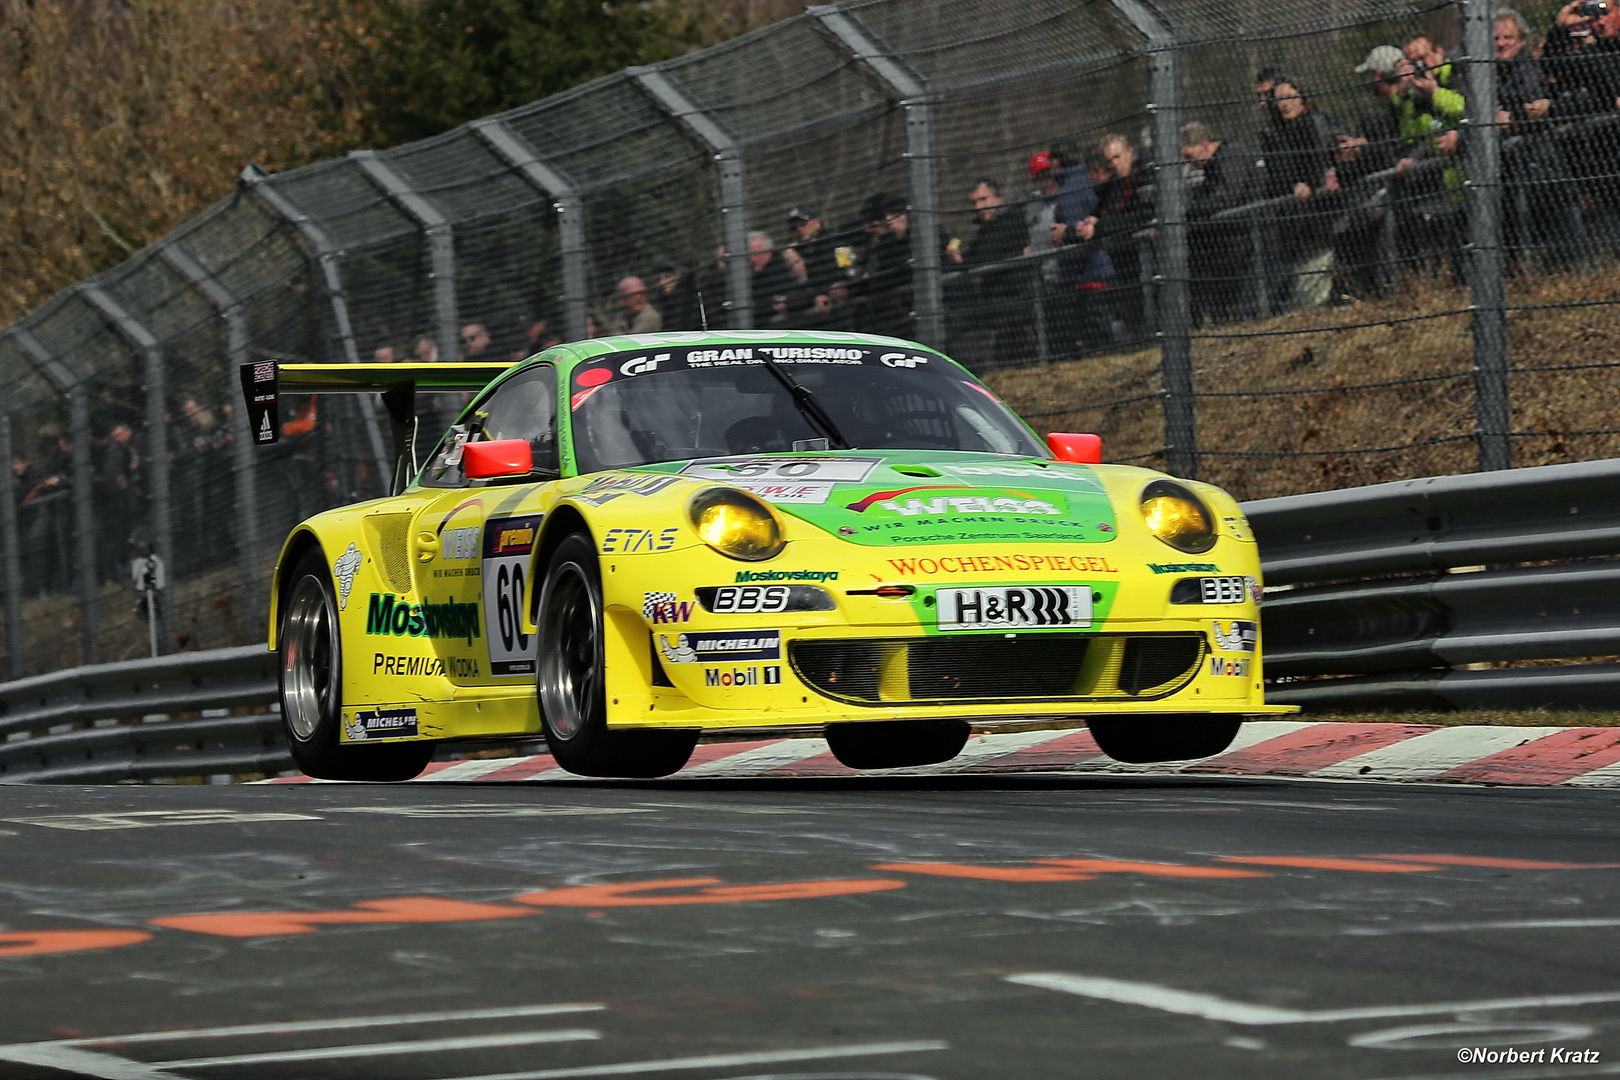 Manthey RSR at VLN 2 / 13.04.2013